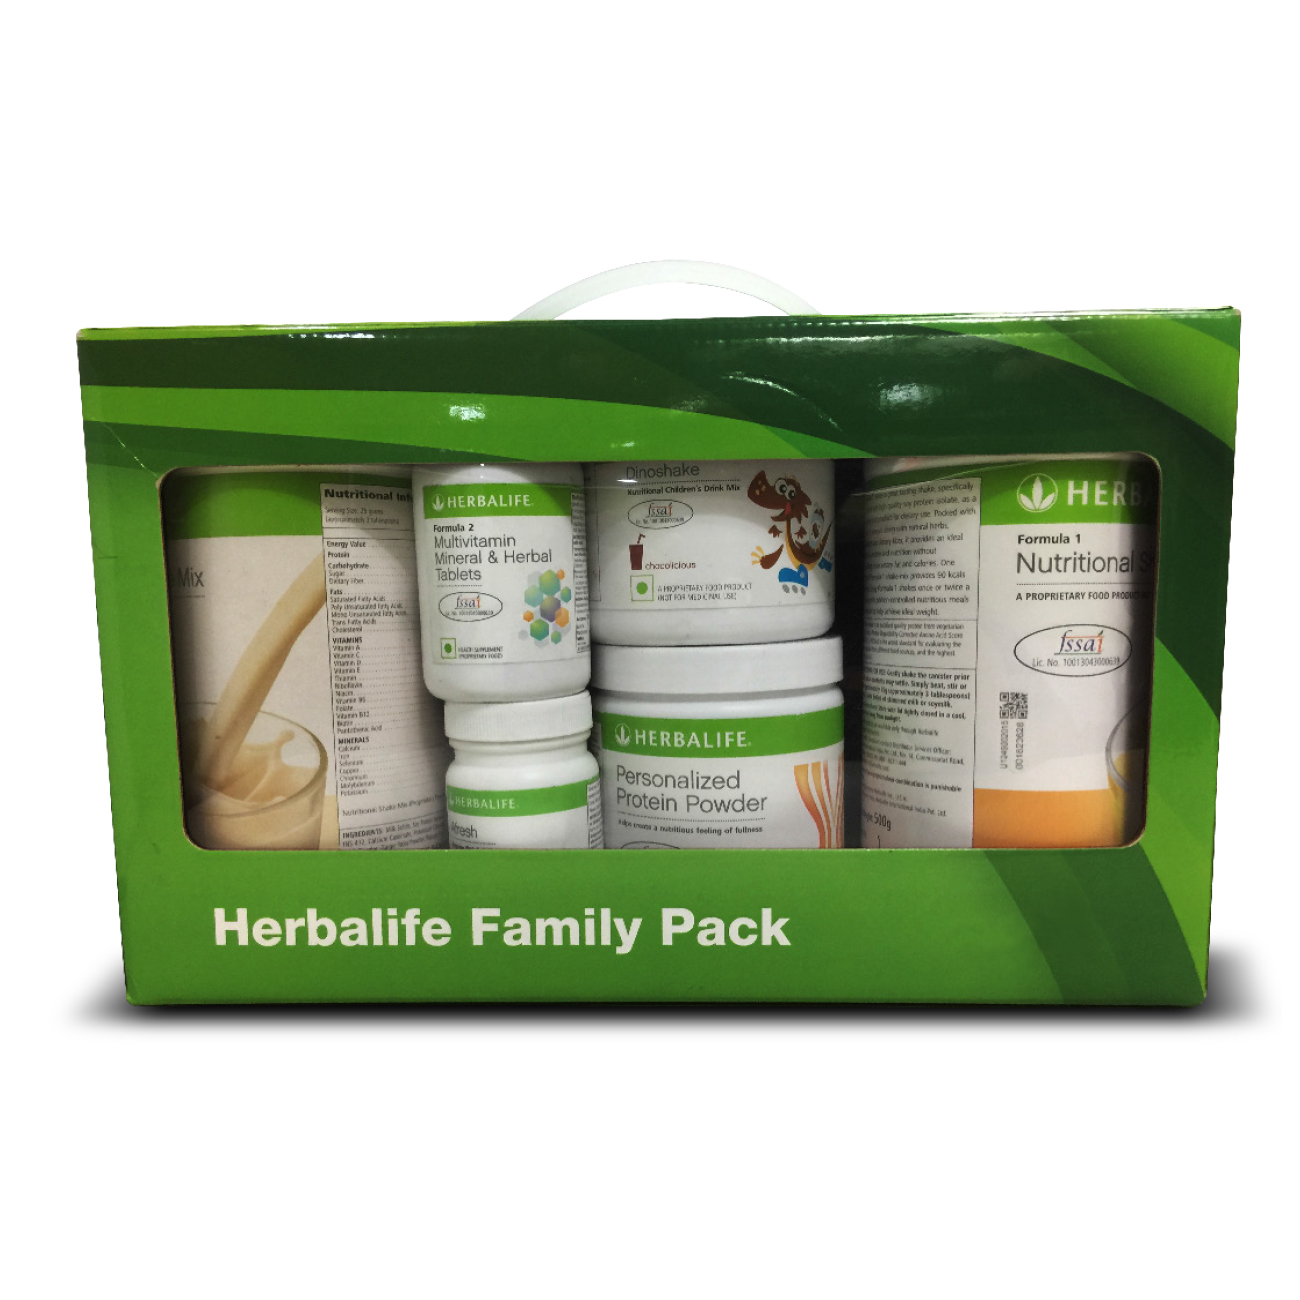 Herbalife Family Pack